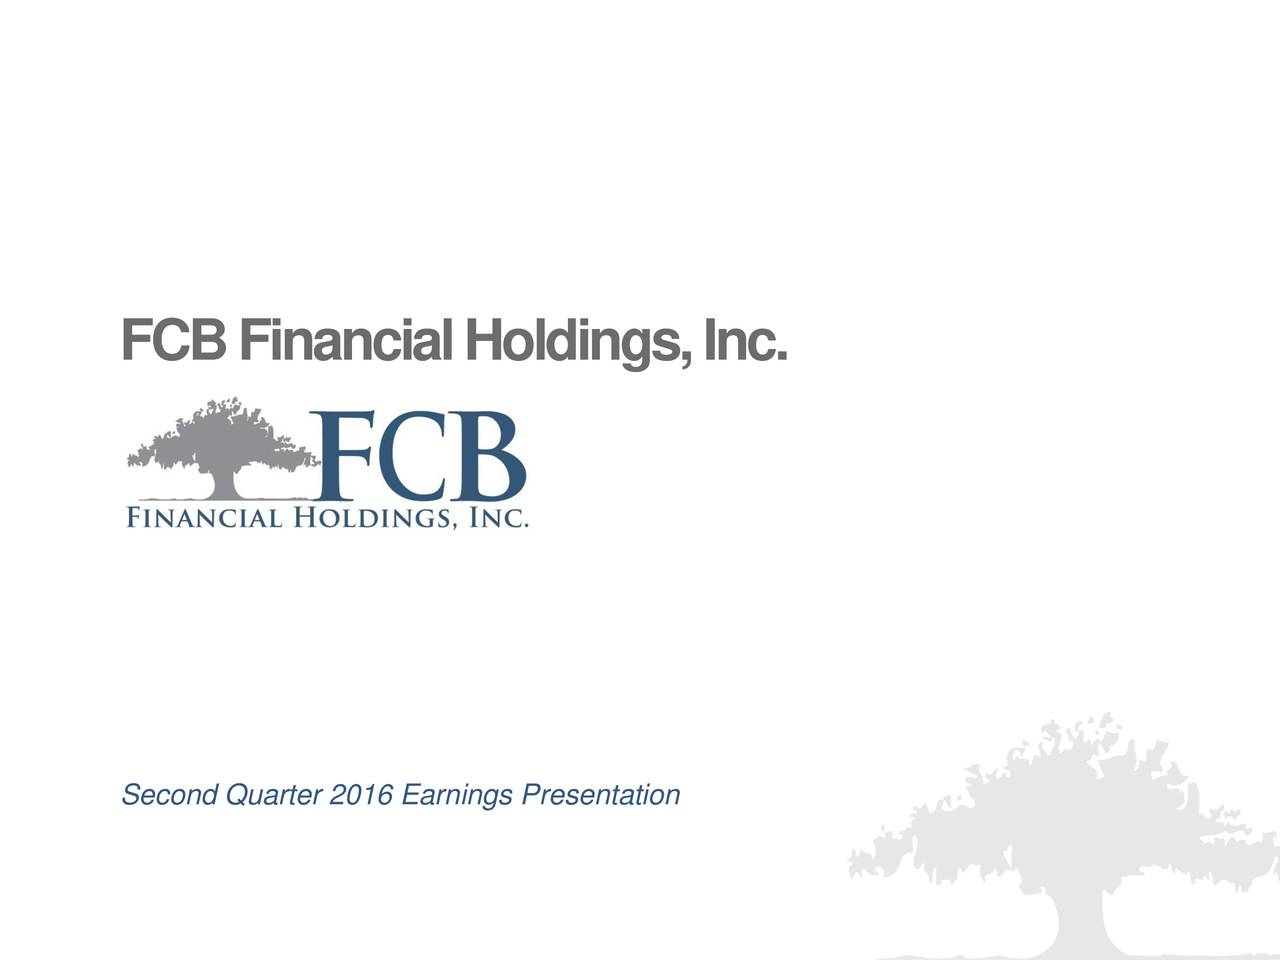 Second Quarter 2016 Earnings Presentation